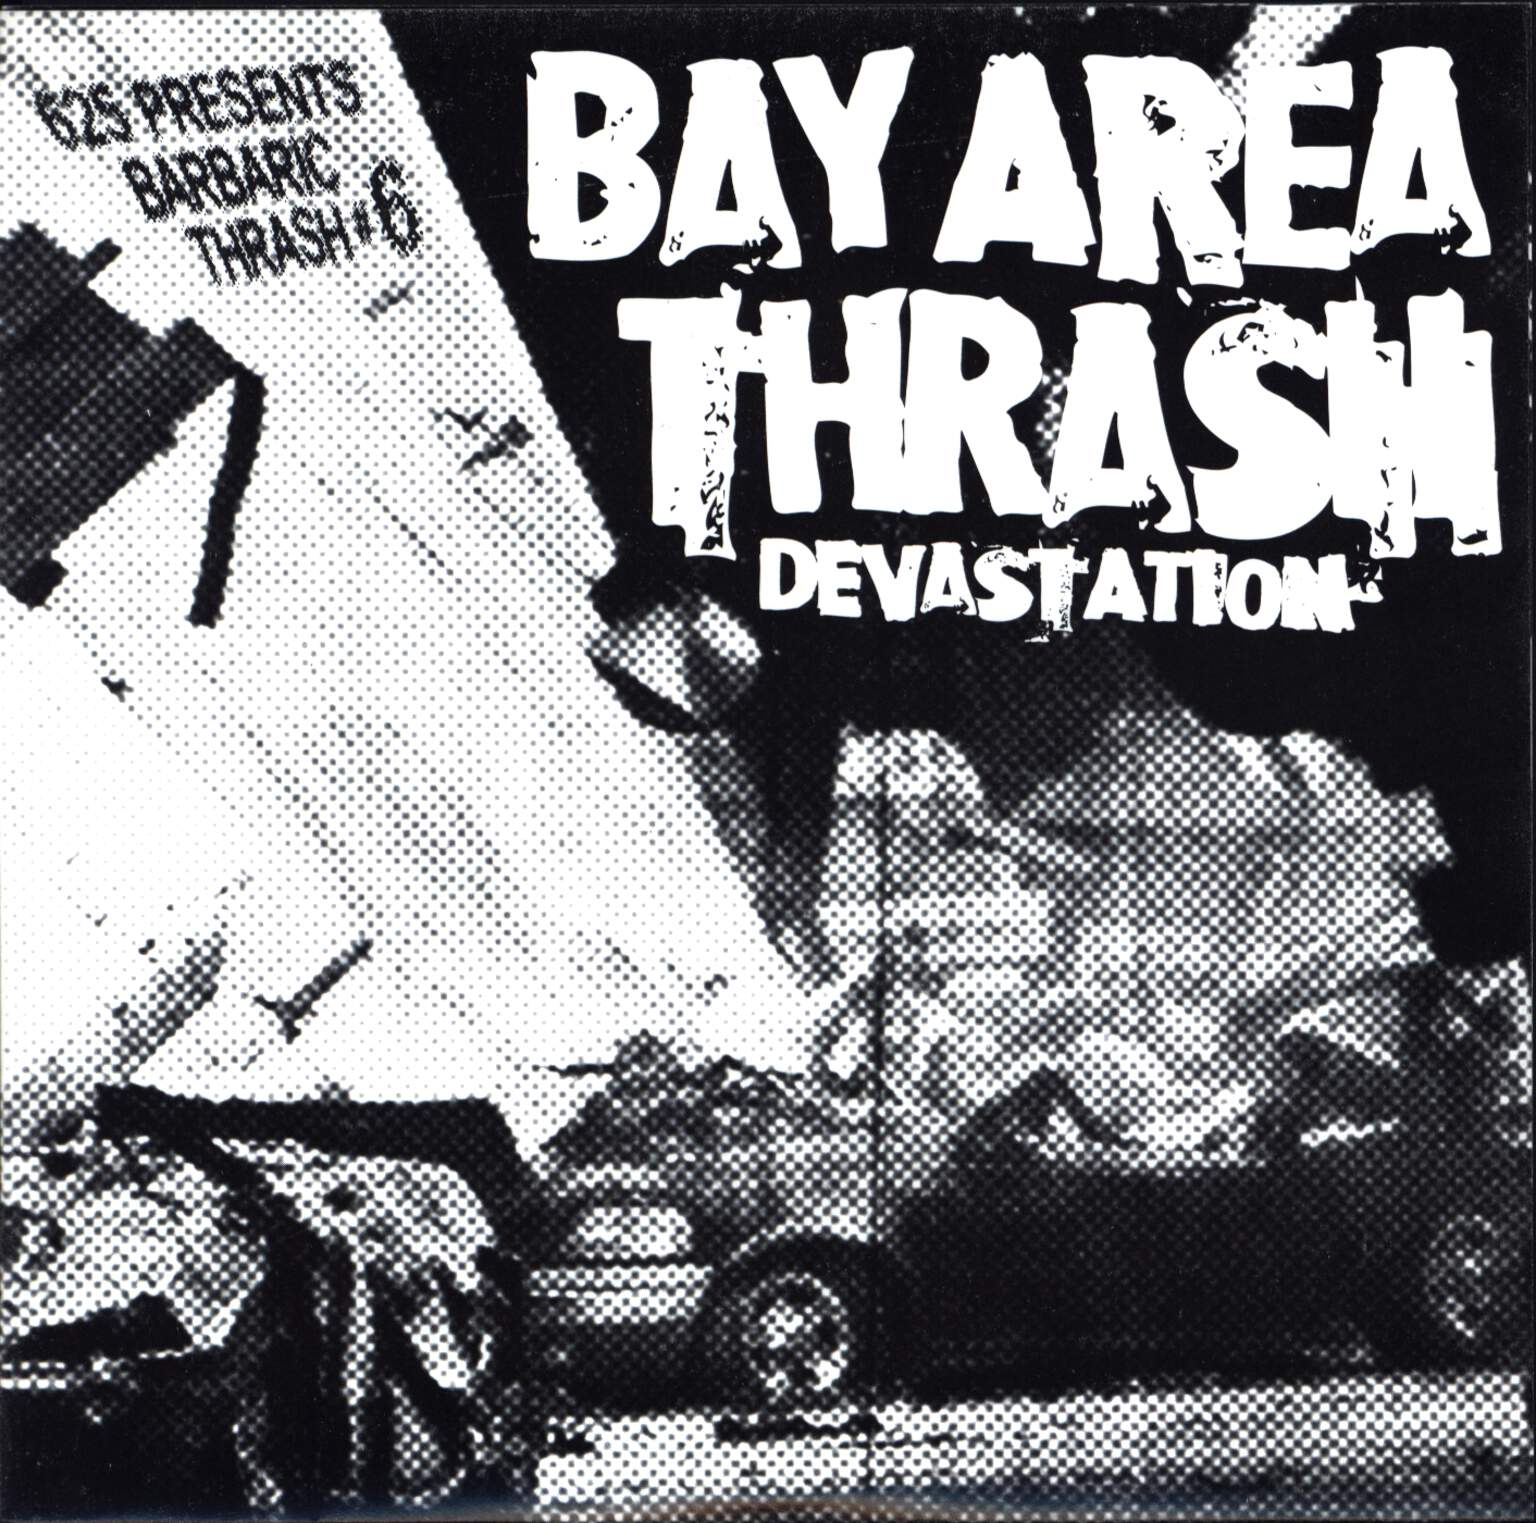 "Various: Barbaric Thrash #6 - Bay Area Thrash Devastation, 7"" Single (Vinyl)"